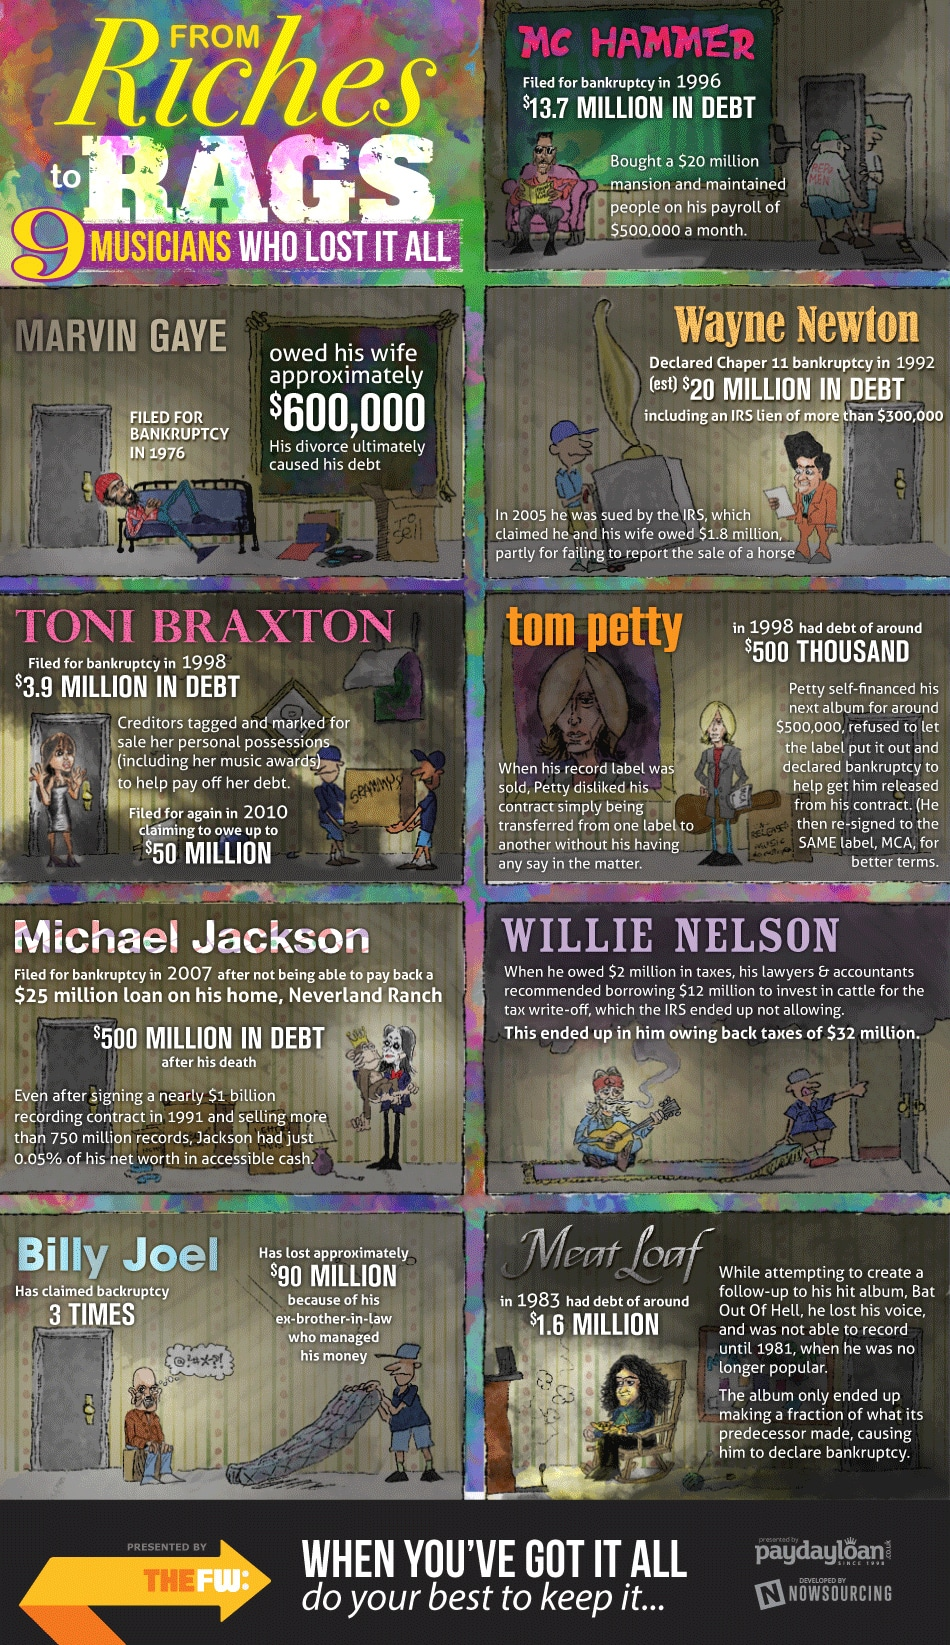 Riches To Rags: Learn From 9 People Who Lost It All [Infographic]